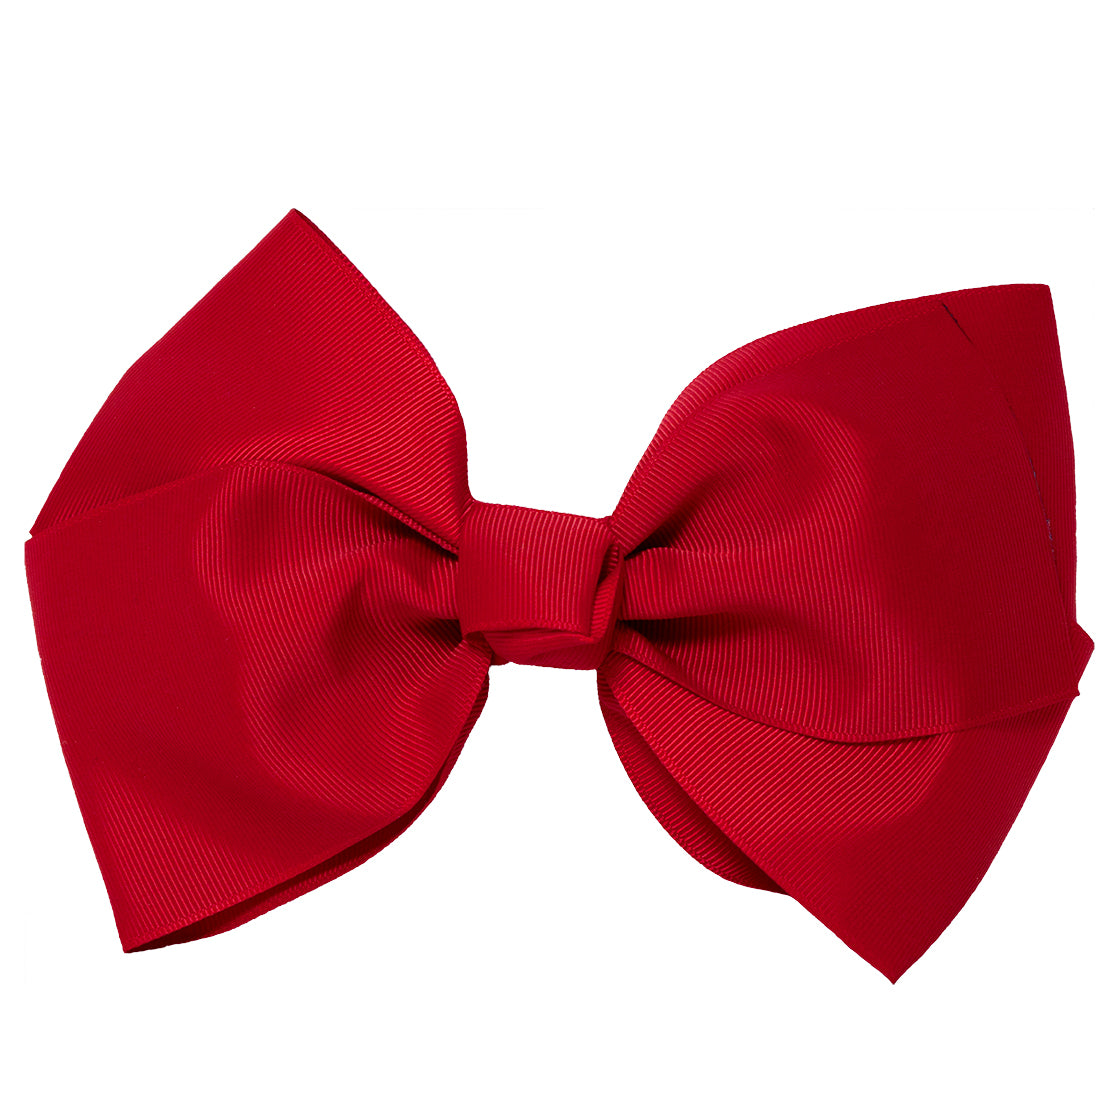 Mia Spirit Extra Large Grosgrain Bow Barrette - maroon red color - designed by #MiaKaminski of Mia Beauty